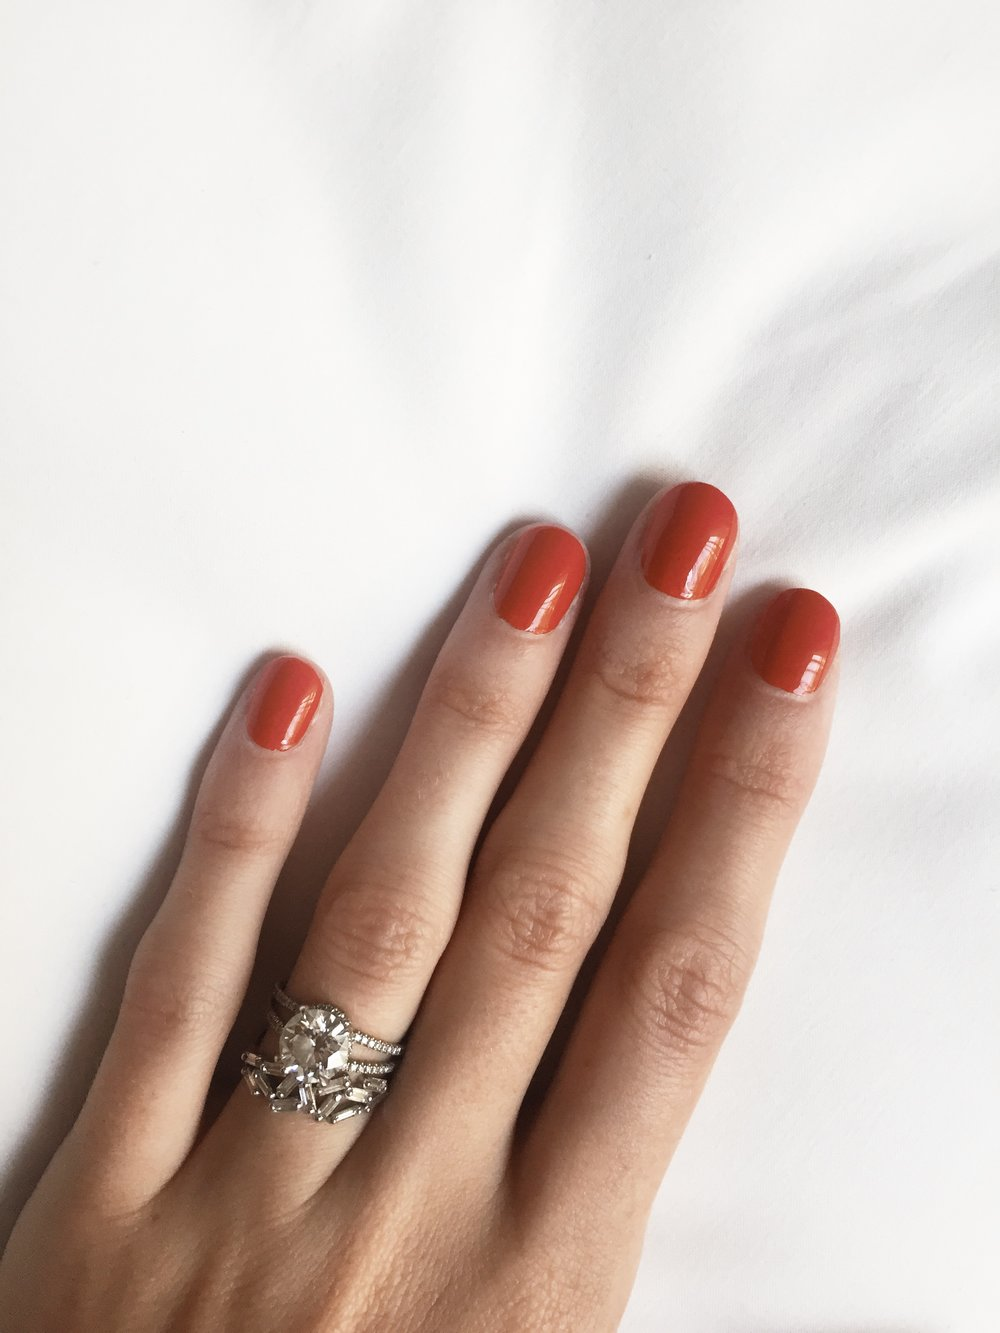 Manicure in 'Stiletto' at Cheeky Salon at the Hoxton, Holborn hotel London